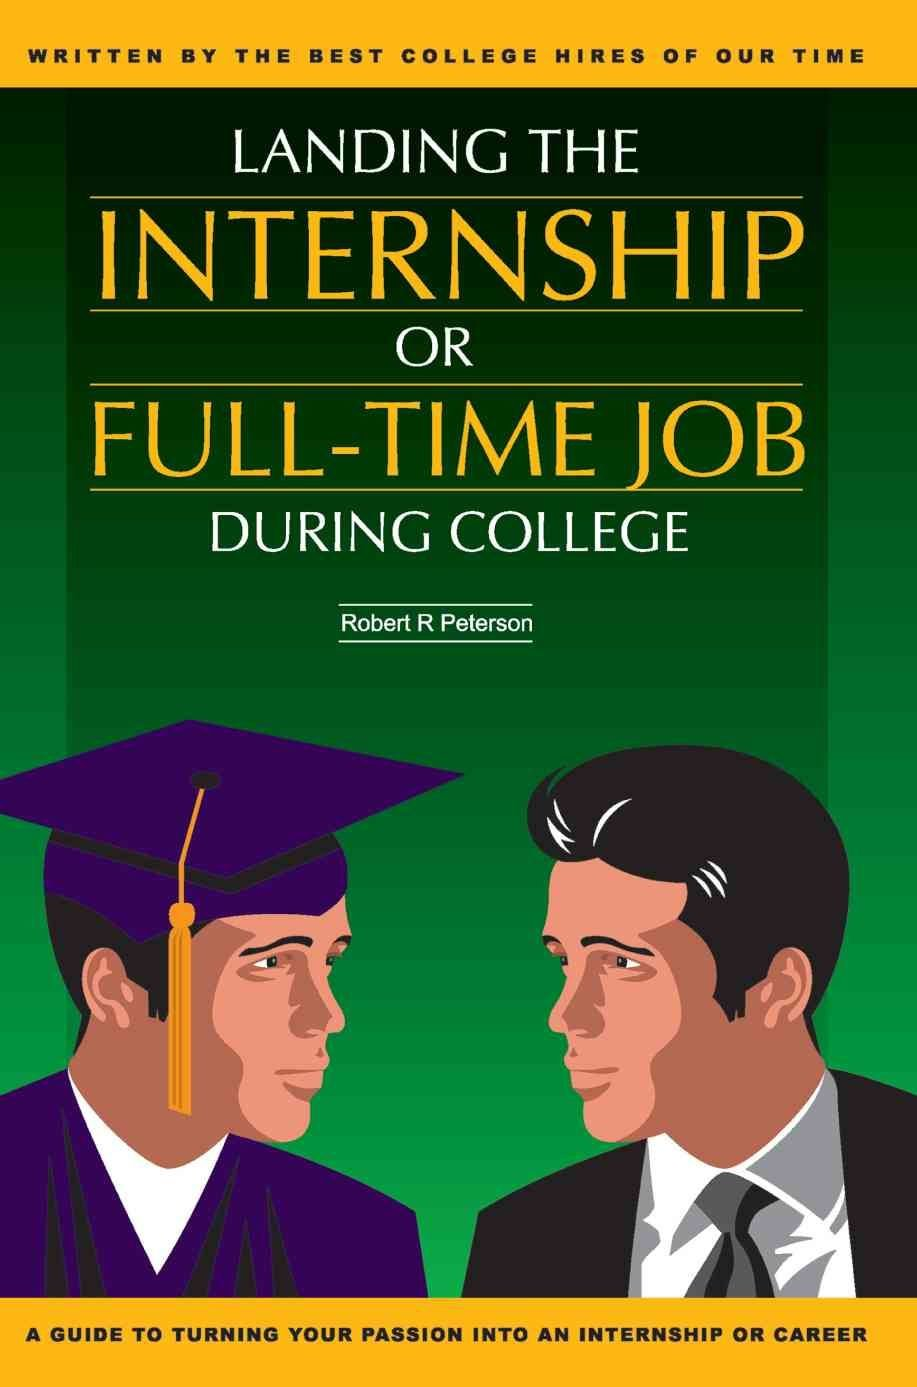 Landing the Internship or Full-Time Job During College - Robert R Peterson